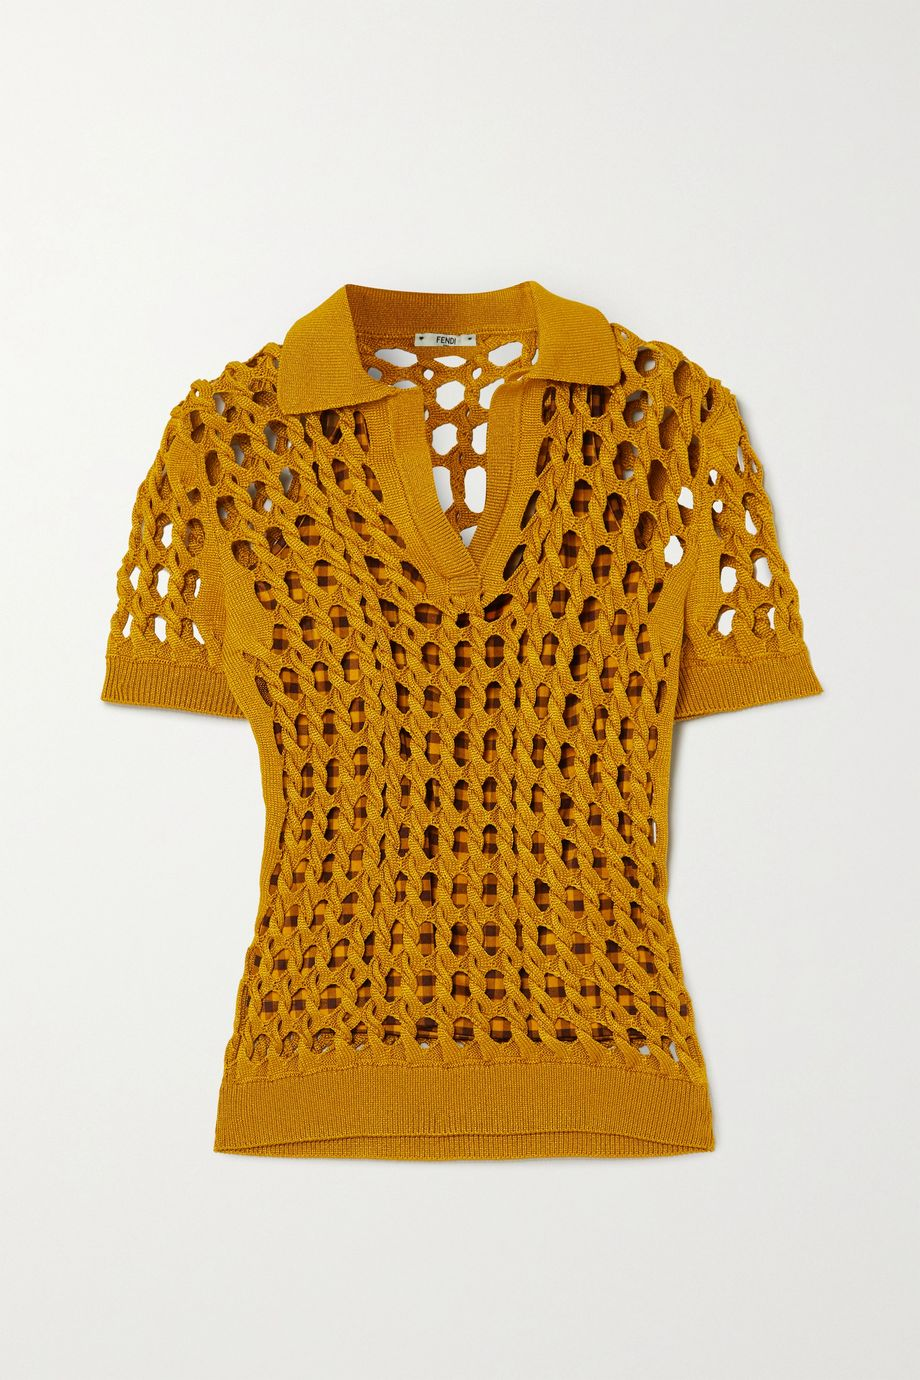 Fendi Crochet-knit polo shirt